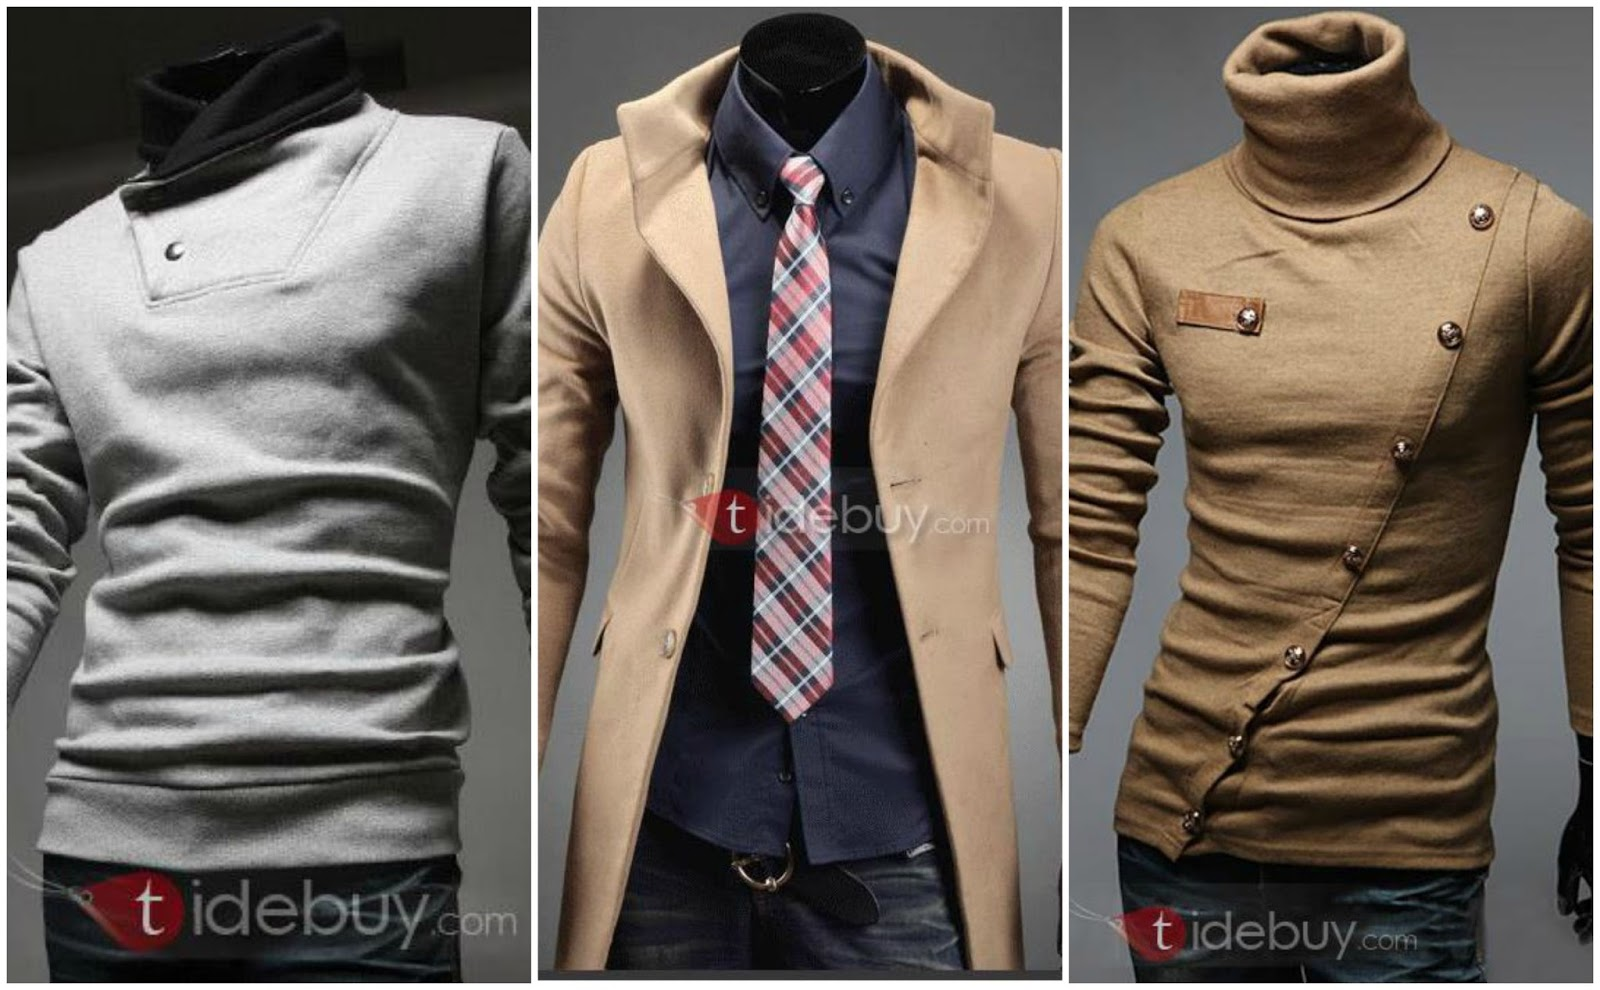 Stylish Men's clothing from Tidebuy.com